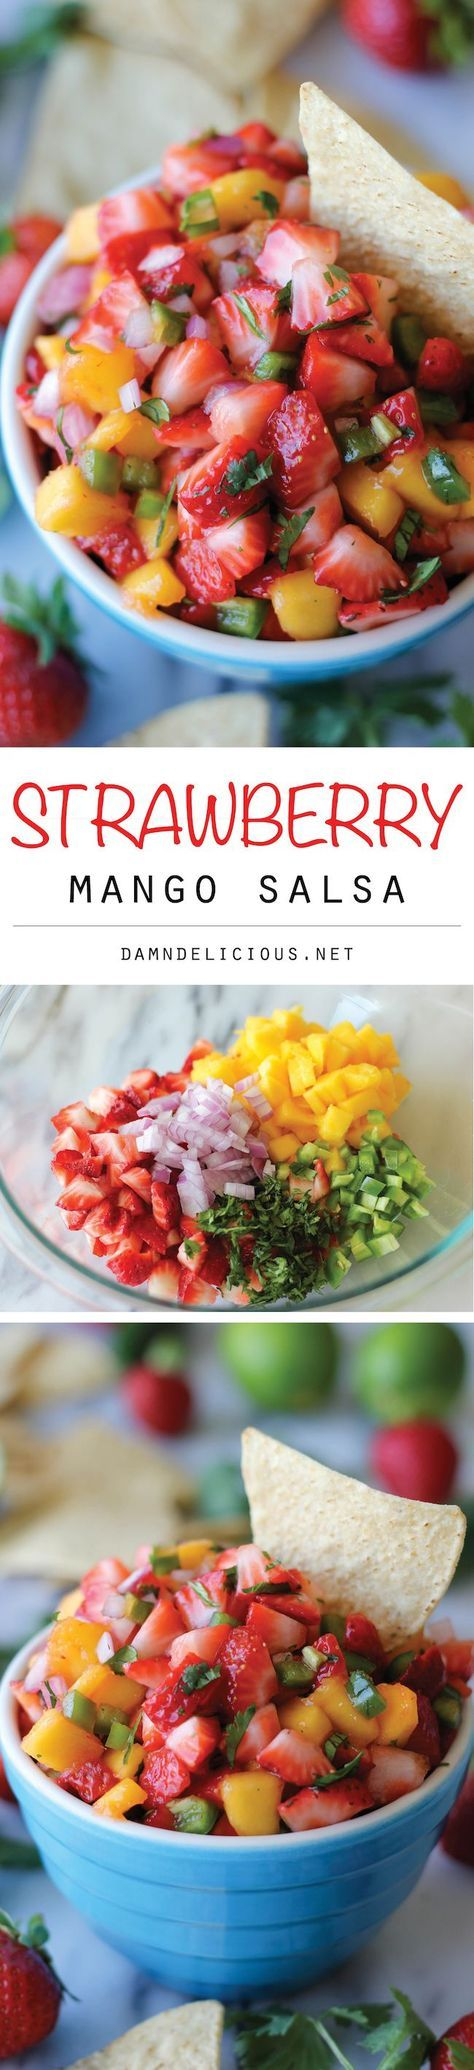 Strawberry Mango Salsa - The combination of sweet and spiciness is so good, you'll want to eat this with a spoon!